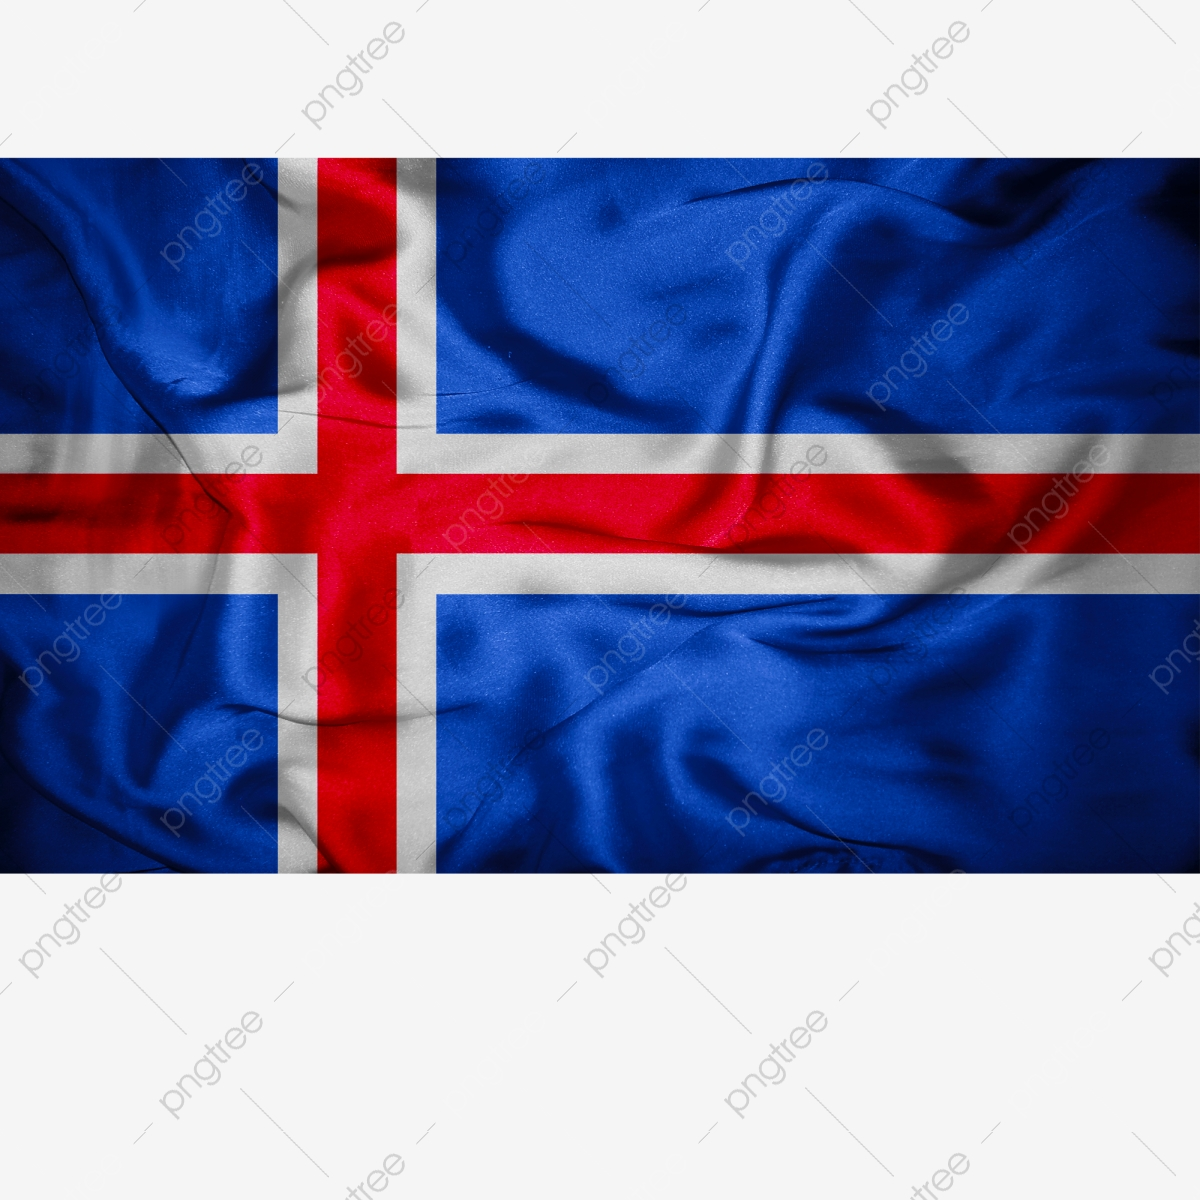 Iceland Flag Transparent With Fabric Iceland Iceland Flag Iceland Flag Vector Png Transparent Clipart Image And Psd File For Free Download